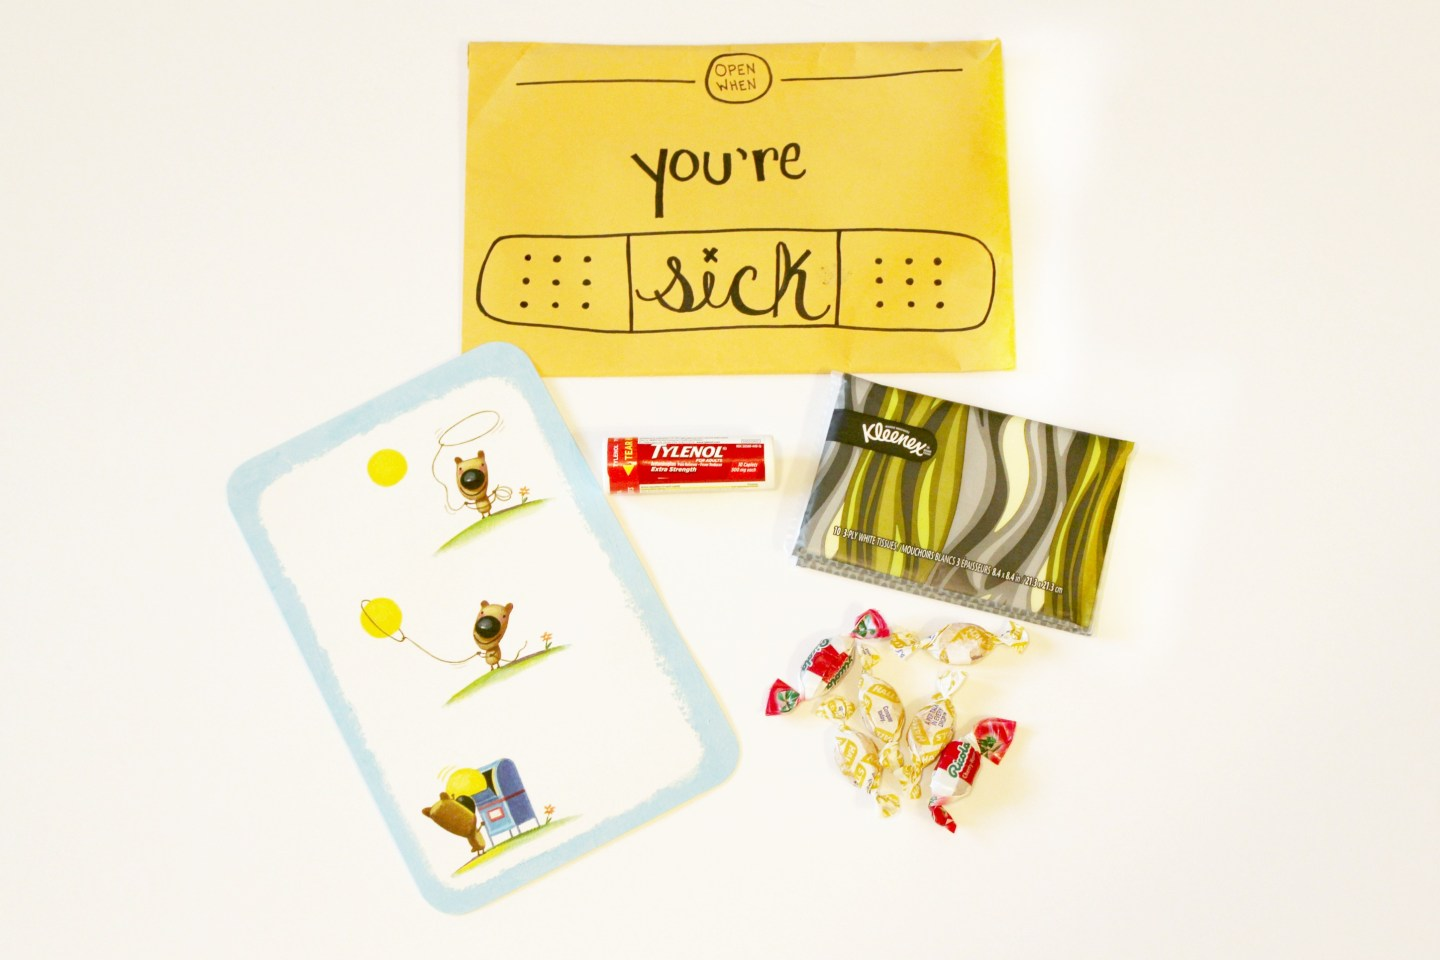 open when letter: open when you are sick